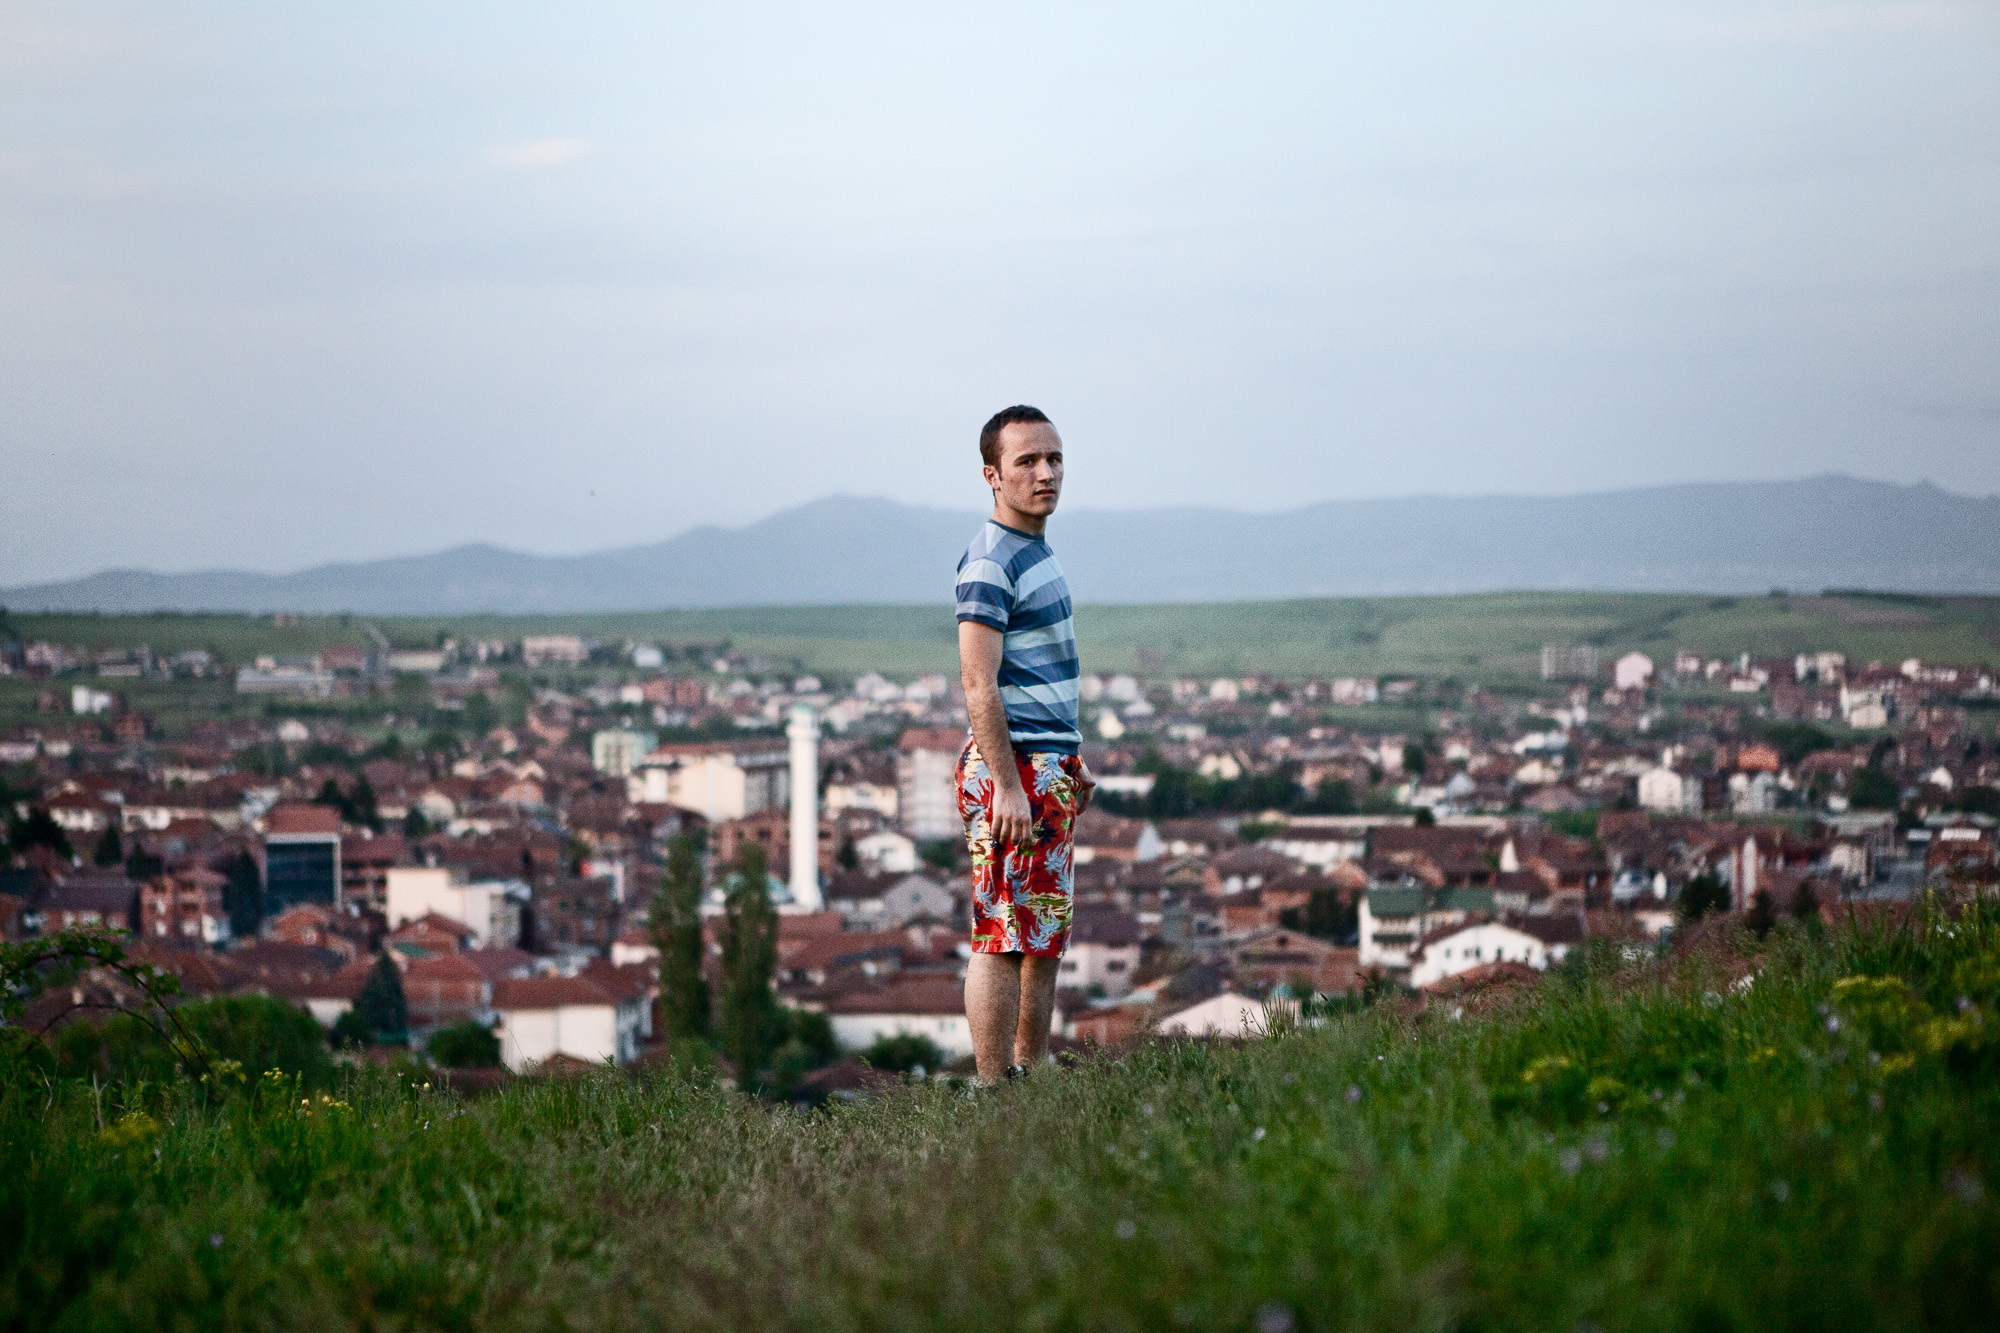 Overlooking the city of Gjakova,  Ilir Tullumi, knows that his immediate future does not lie here.  Fiercely proud of his nation and being a Kosovo Albanian, he wishes to make his mark elsewhere, but someday, when the country is more prosperous, return to his homeland. Already, 15% of Kosovo's GDP comes from the diaspora living and working abroad.